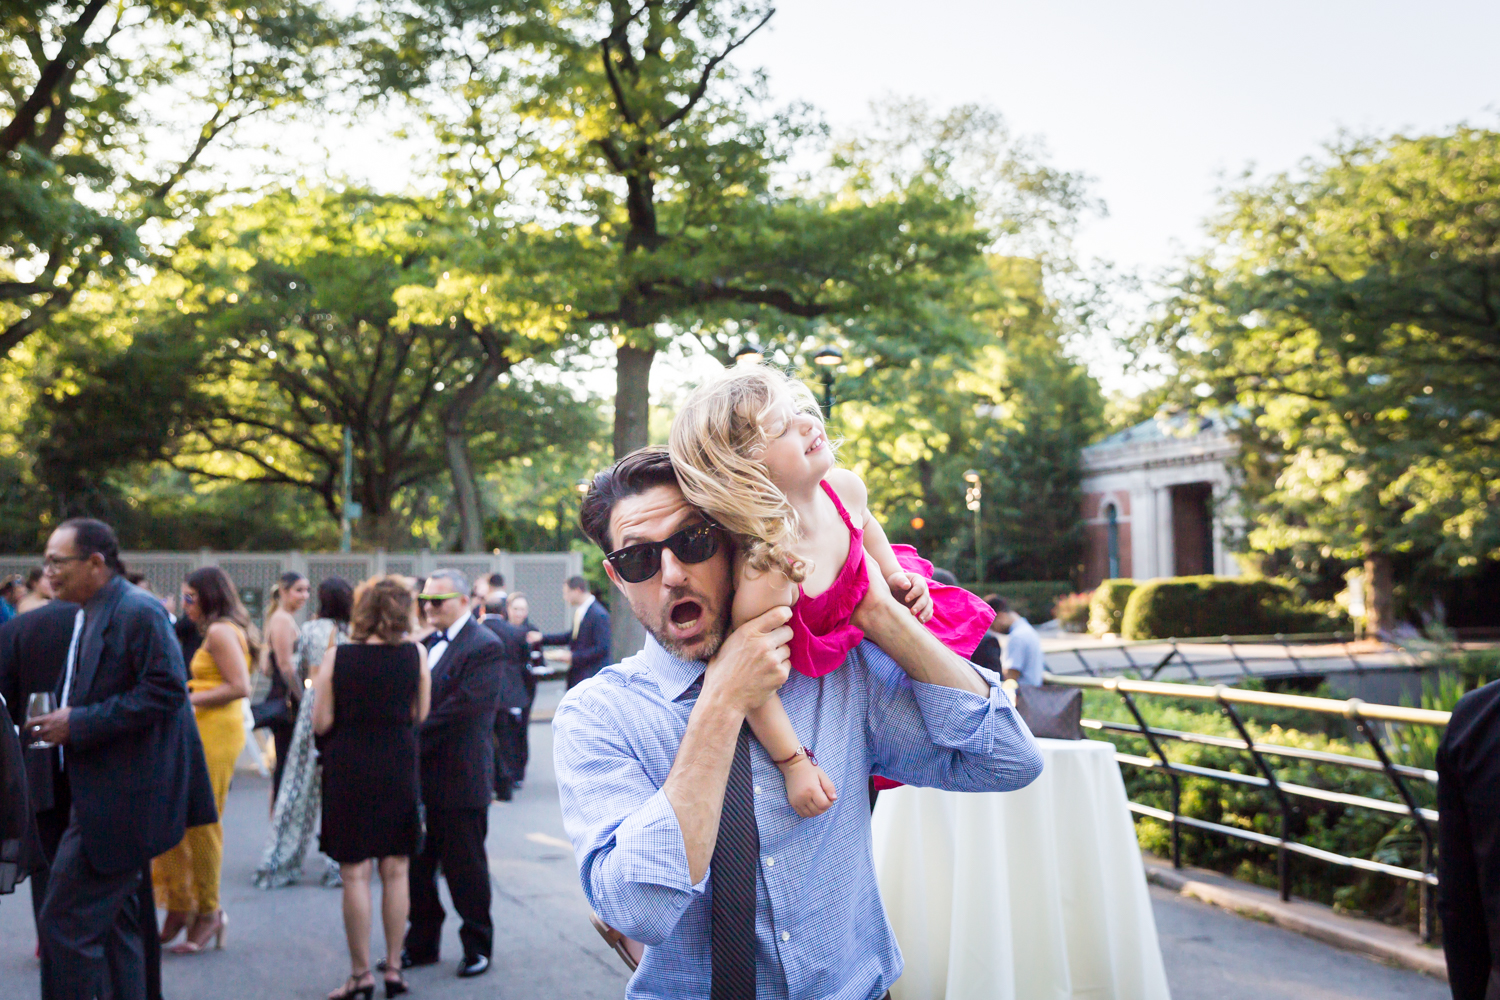 Guest and child for an article on Bronx Zoo wedding venue updates